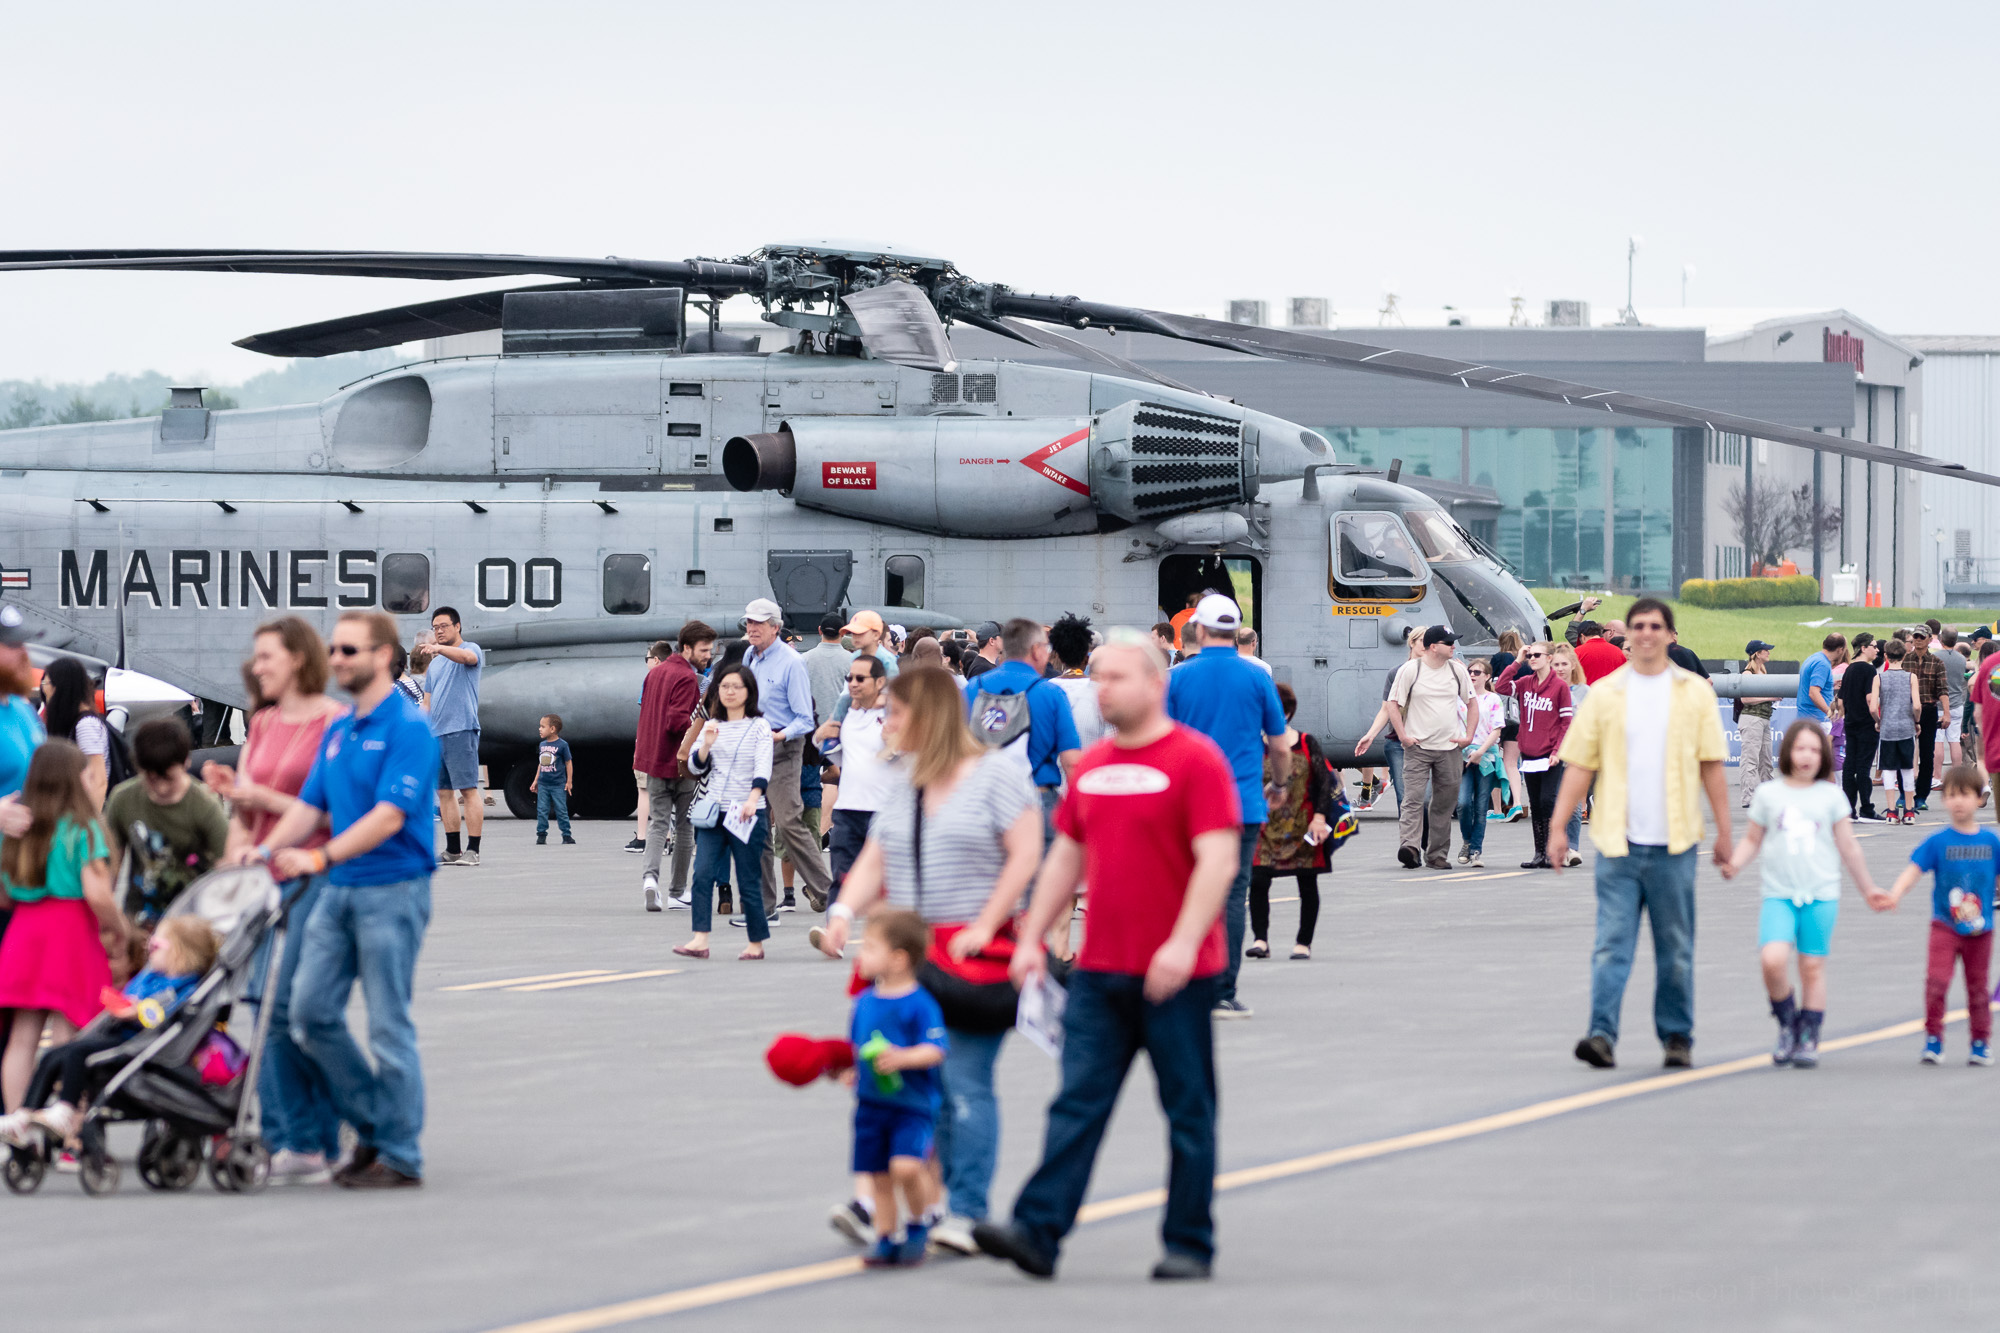 Crowds walking around the 2019 Manassas Airshow, with a US Marine Super Stallion CH-53 helicopter in the background.